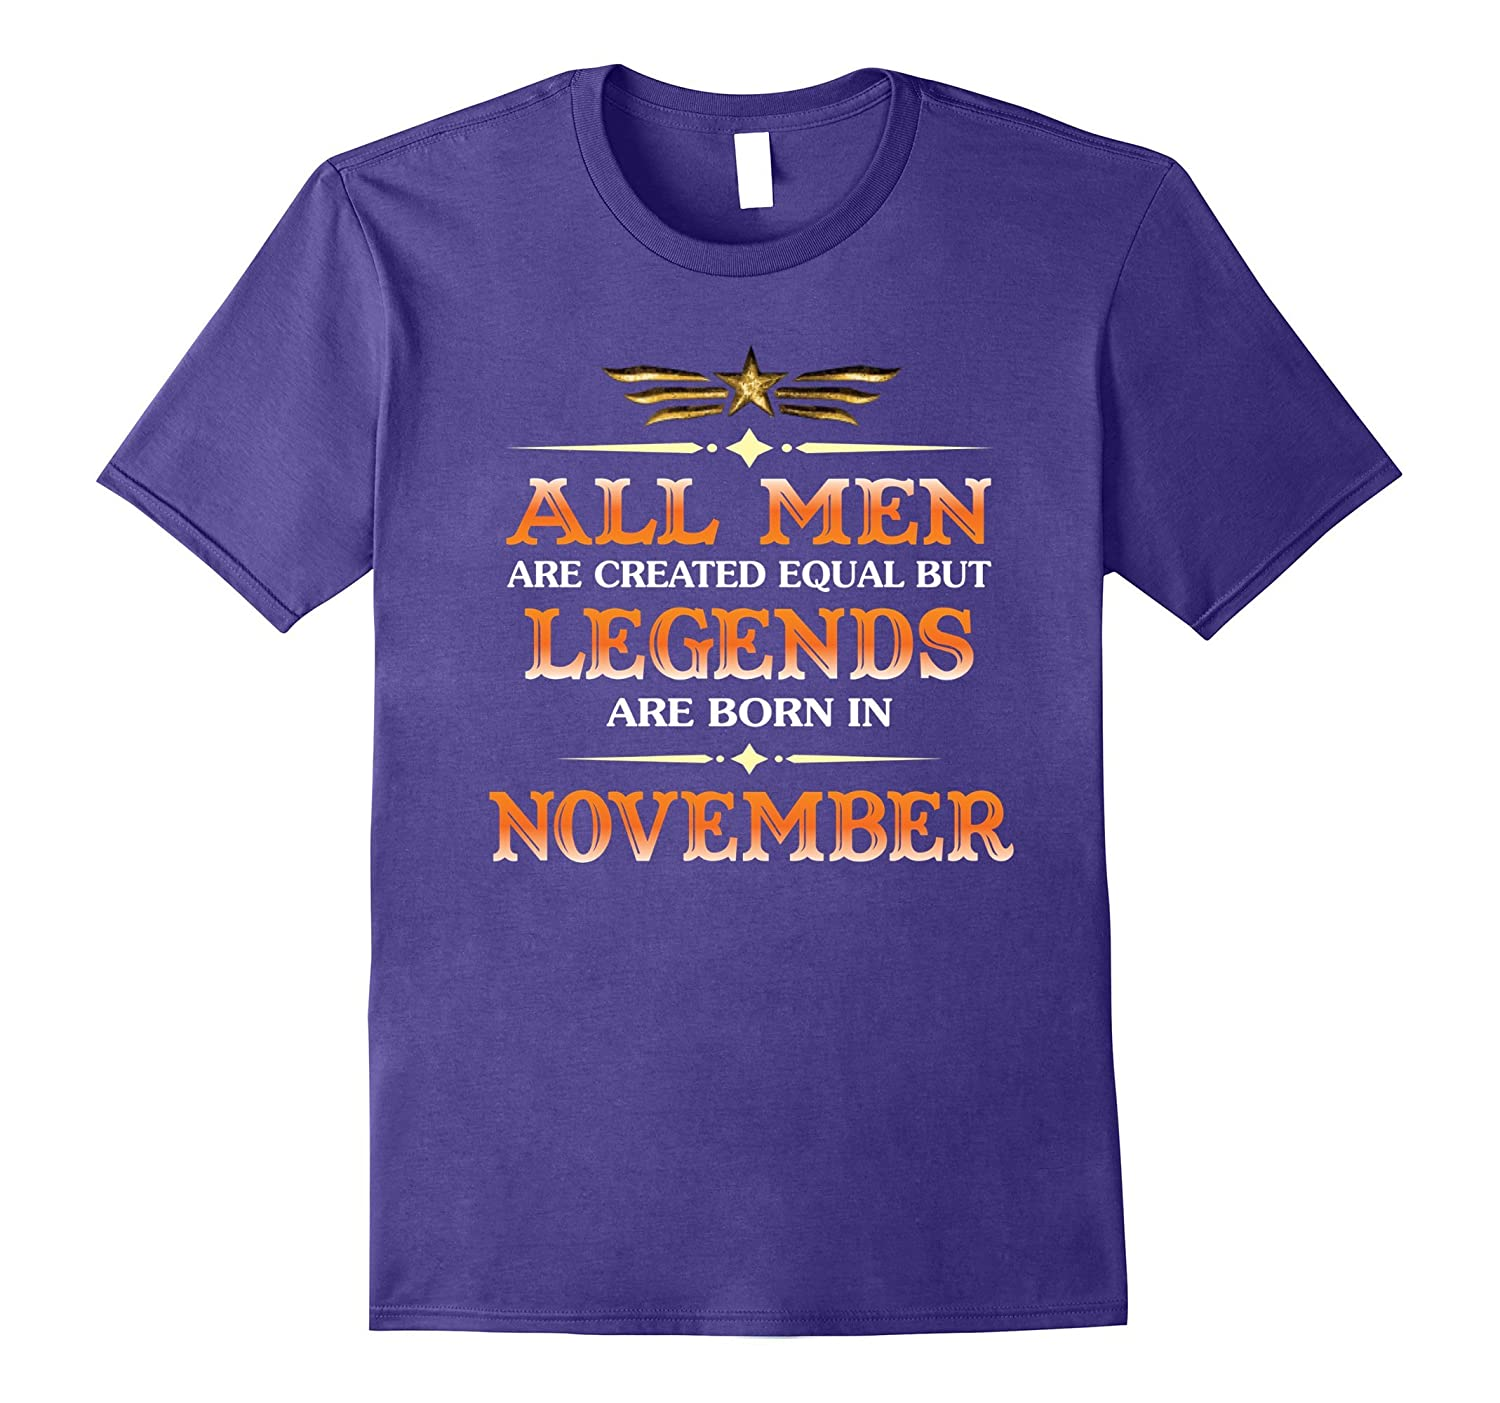 All Men Are Created Equal But Legends Are Born In November-T-Shirt